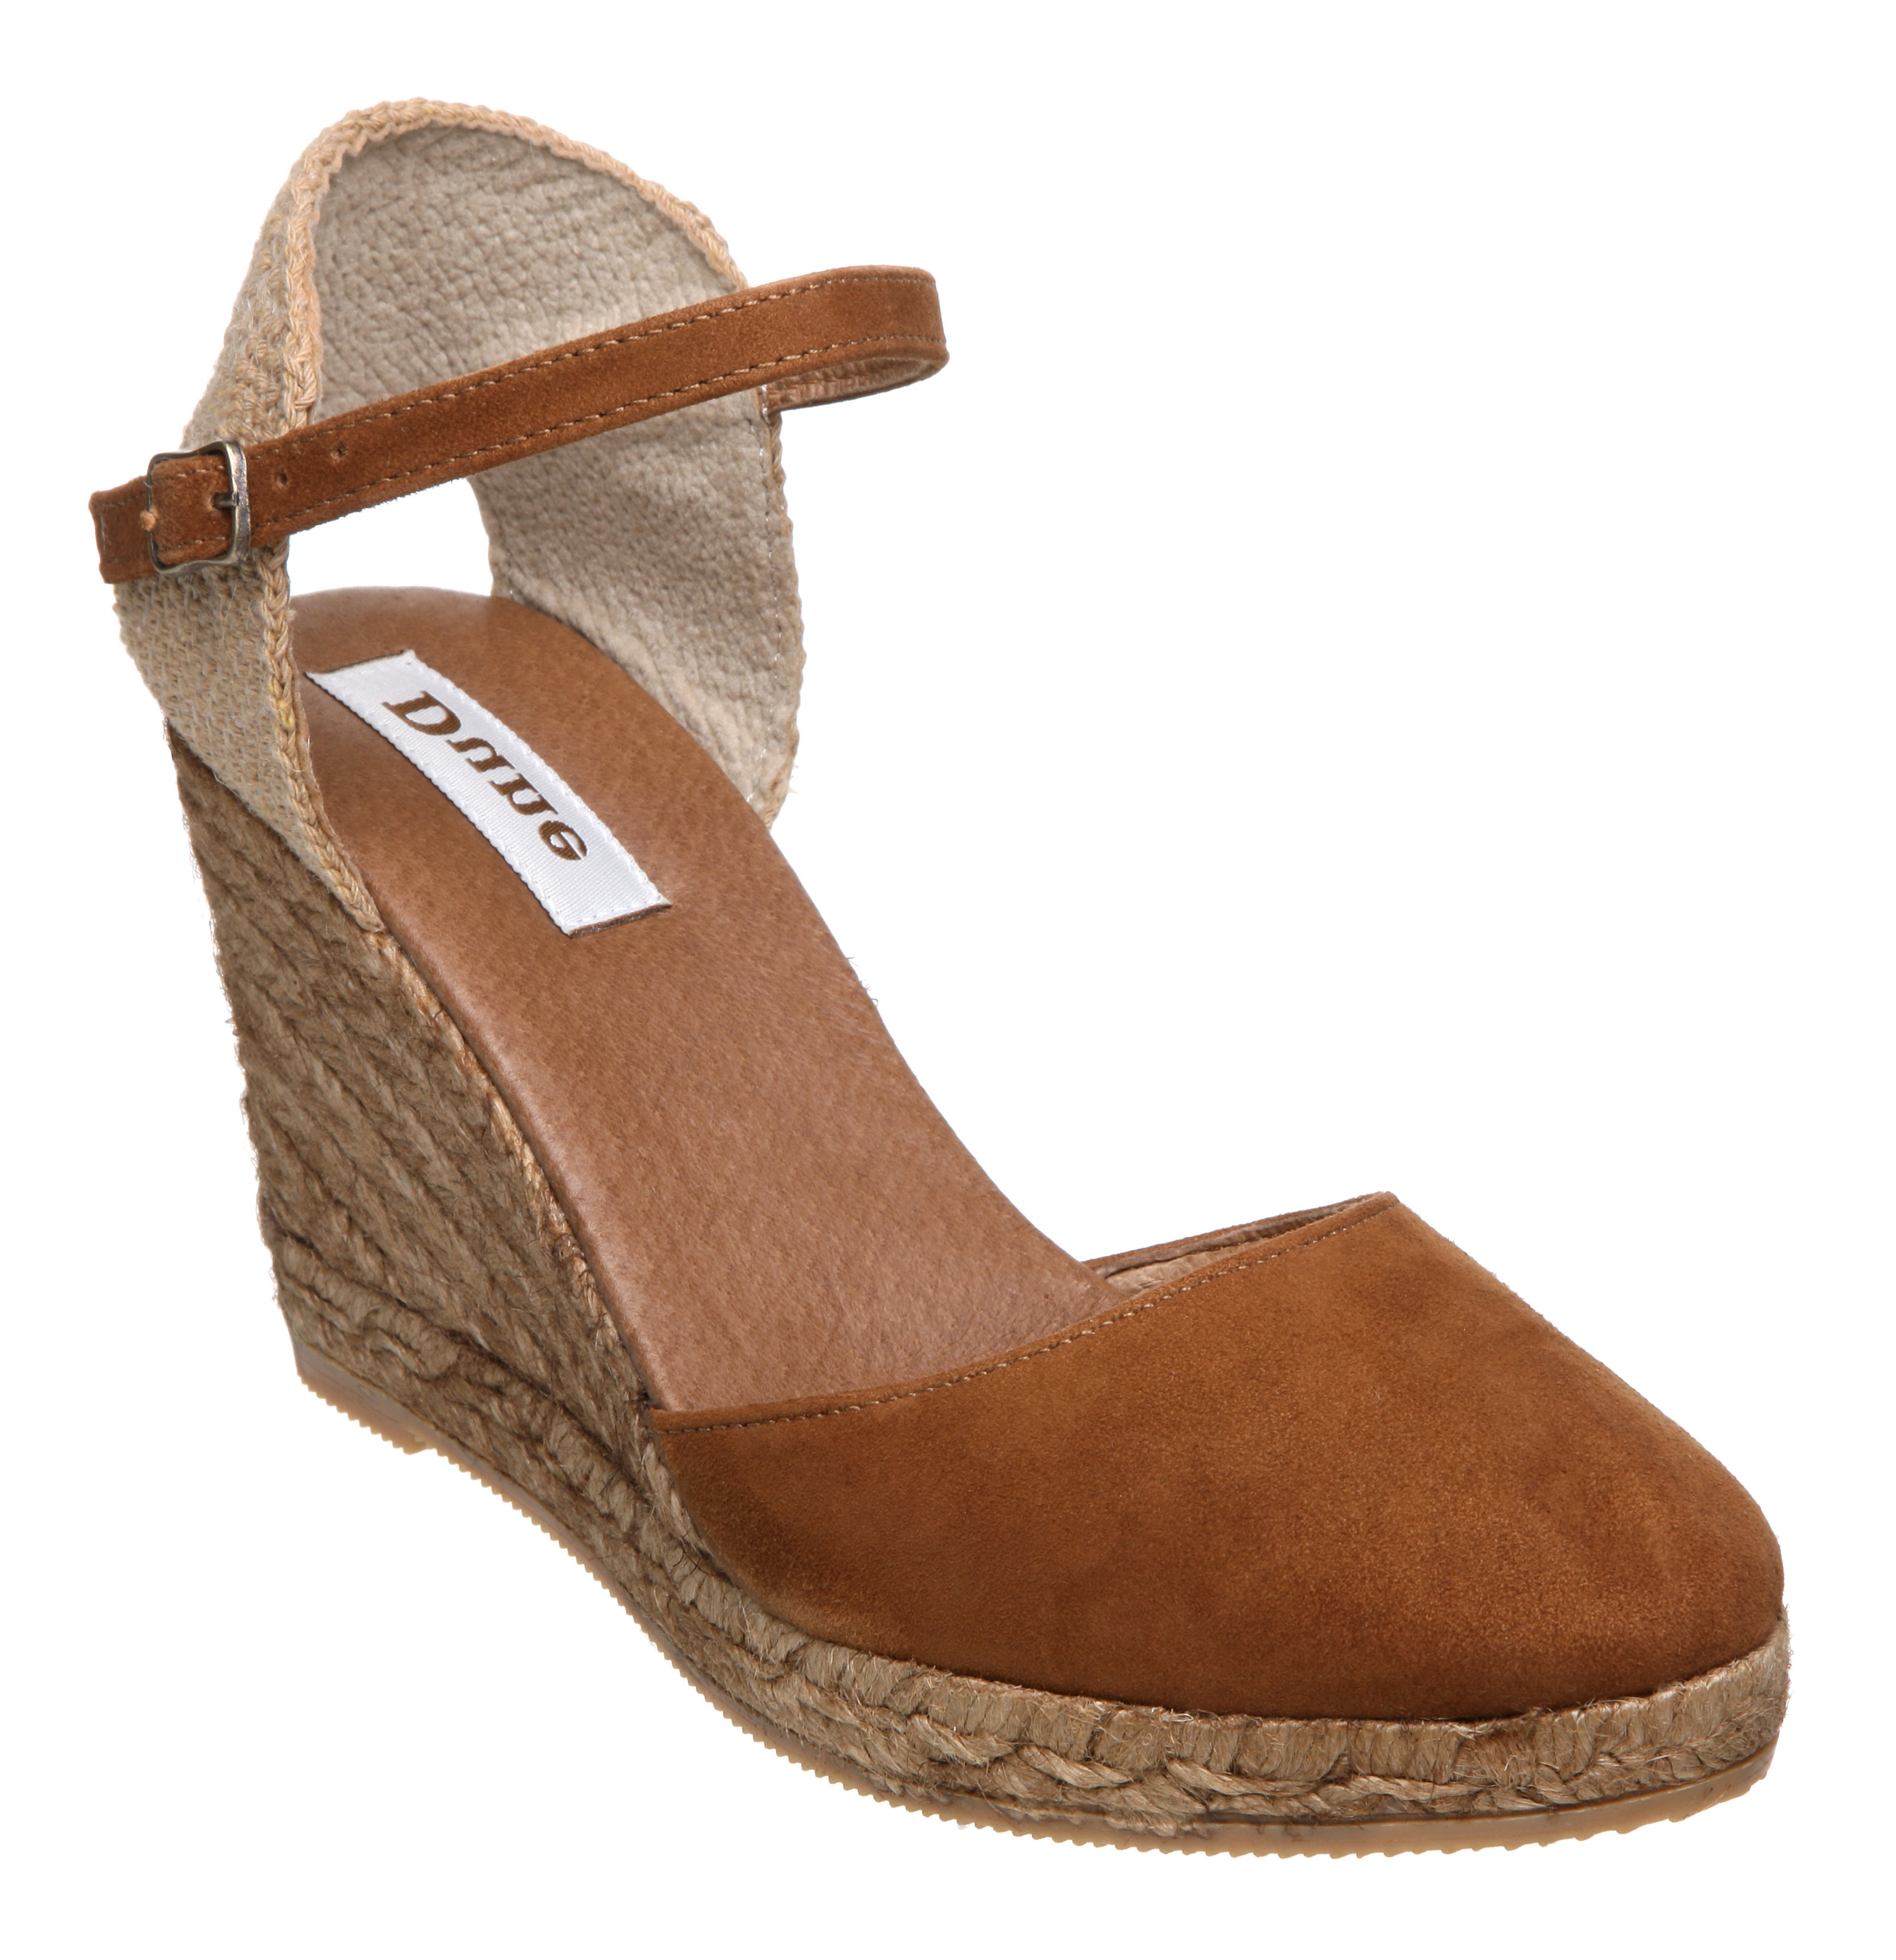 Dune Shoes Outlet Uk